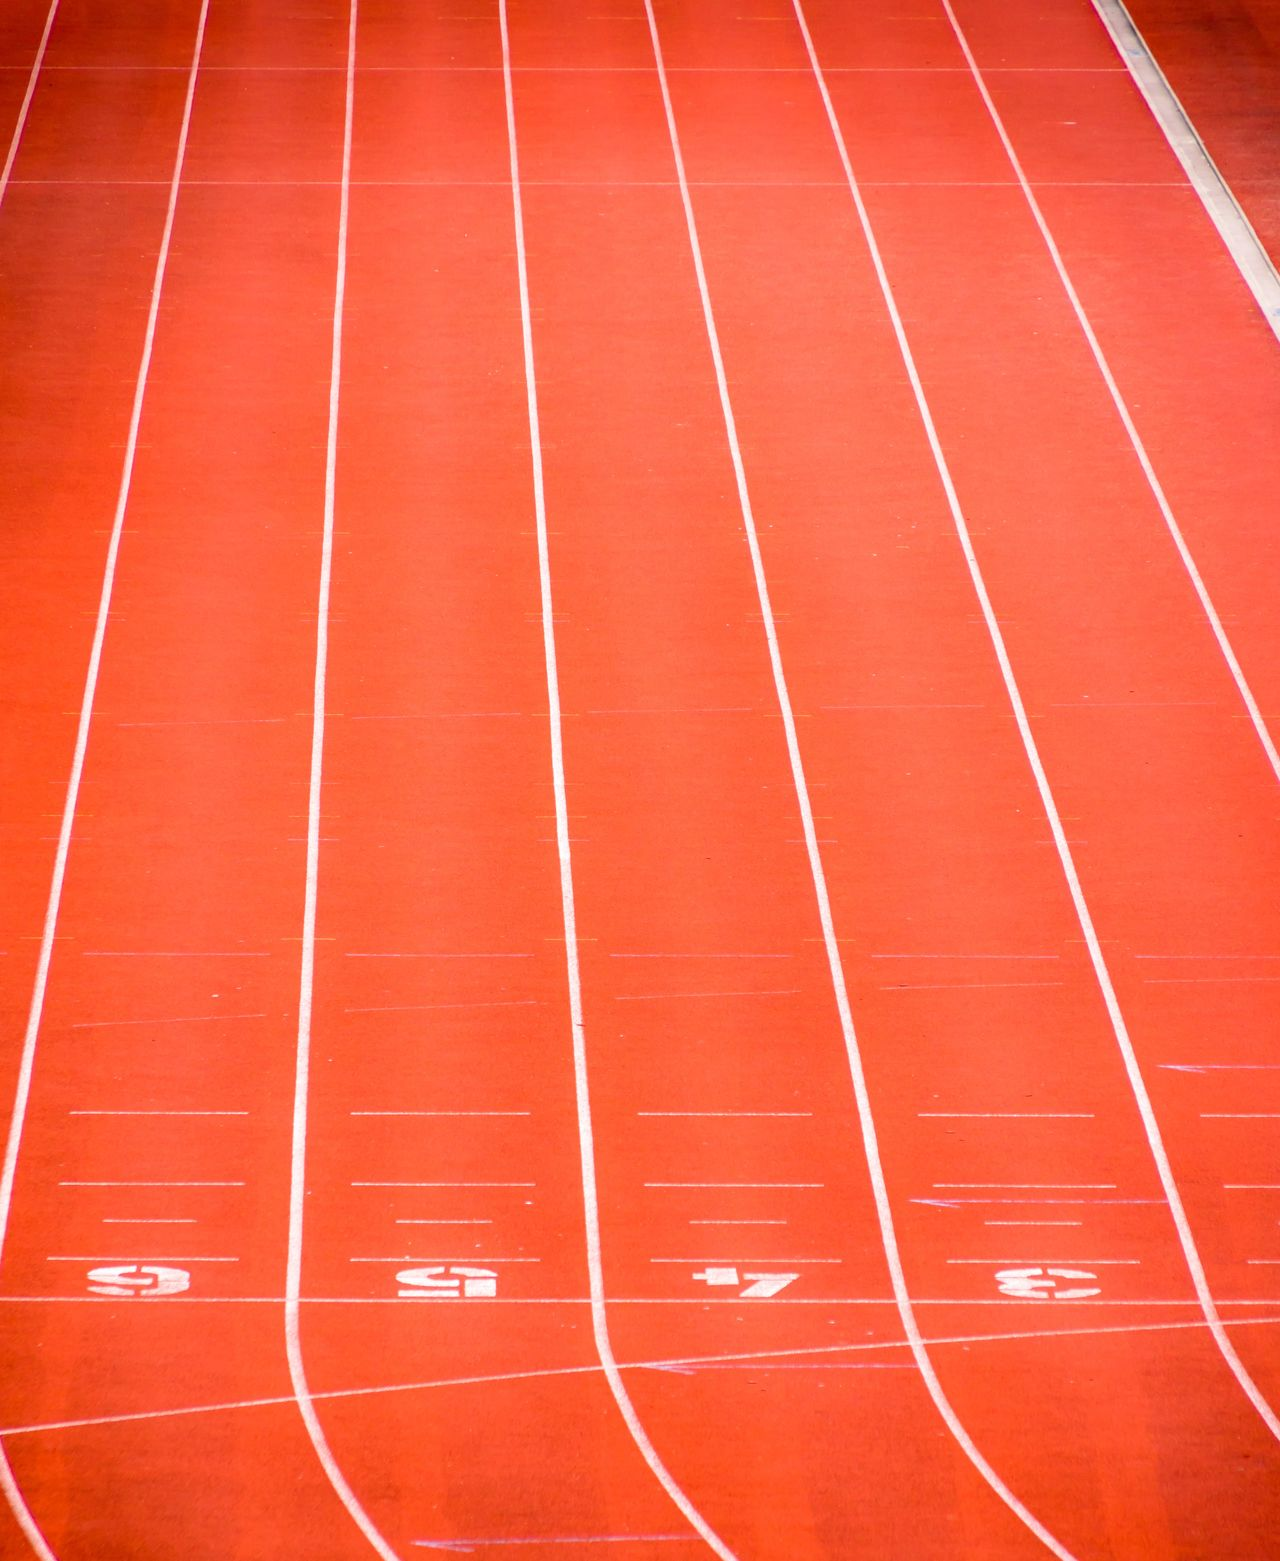 Backgrounds Competition Competitive Sport Curve Day Dividing Line High Angle View No People Outdoors Red Running Track Sport Sports Race Sports Track Sprinting Stadium Starting Line Track And Field Track And Field Athlete Track And Field Event Track And Field Stadium Track Event